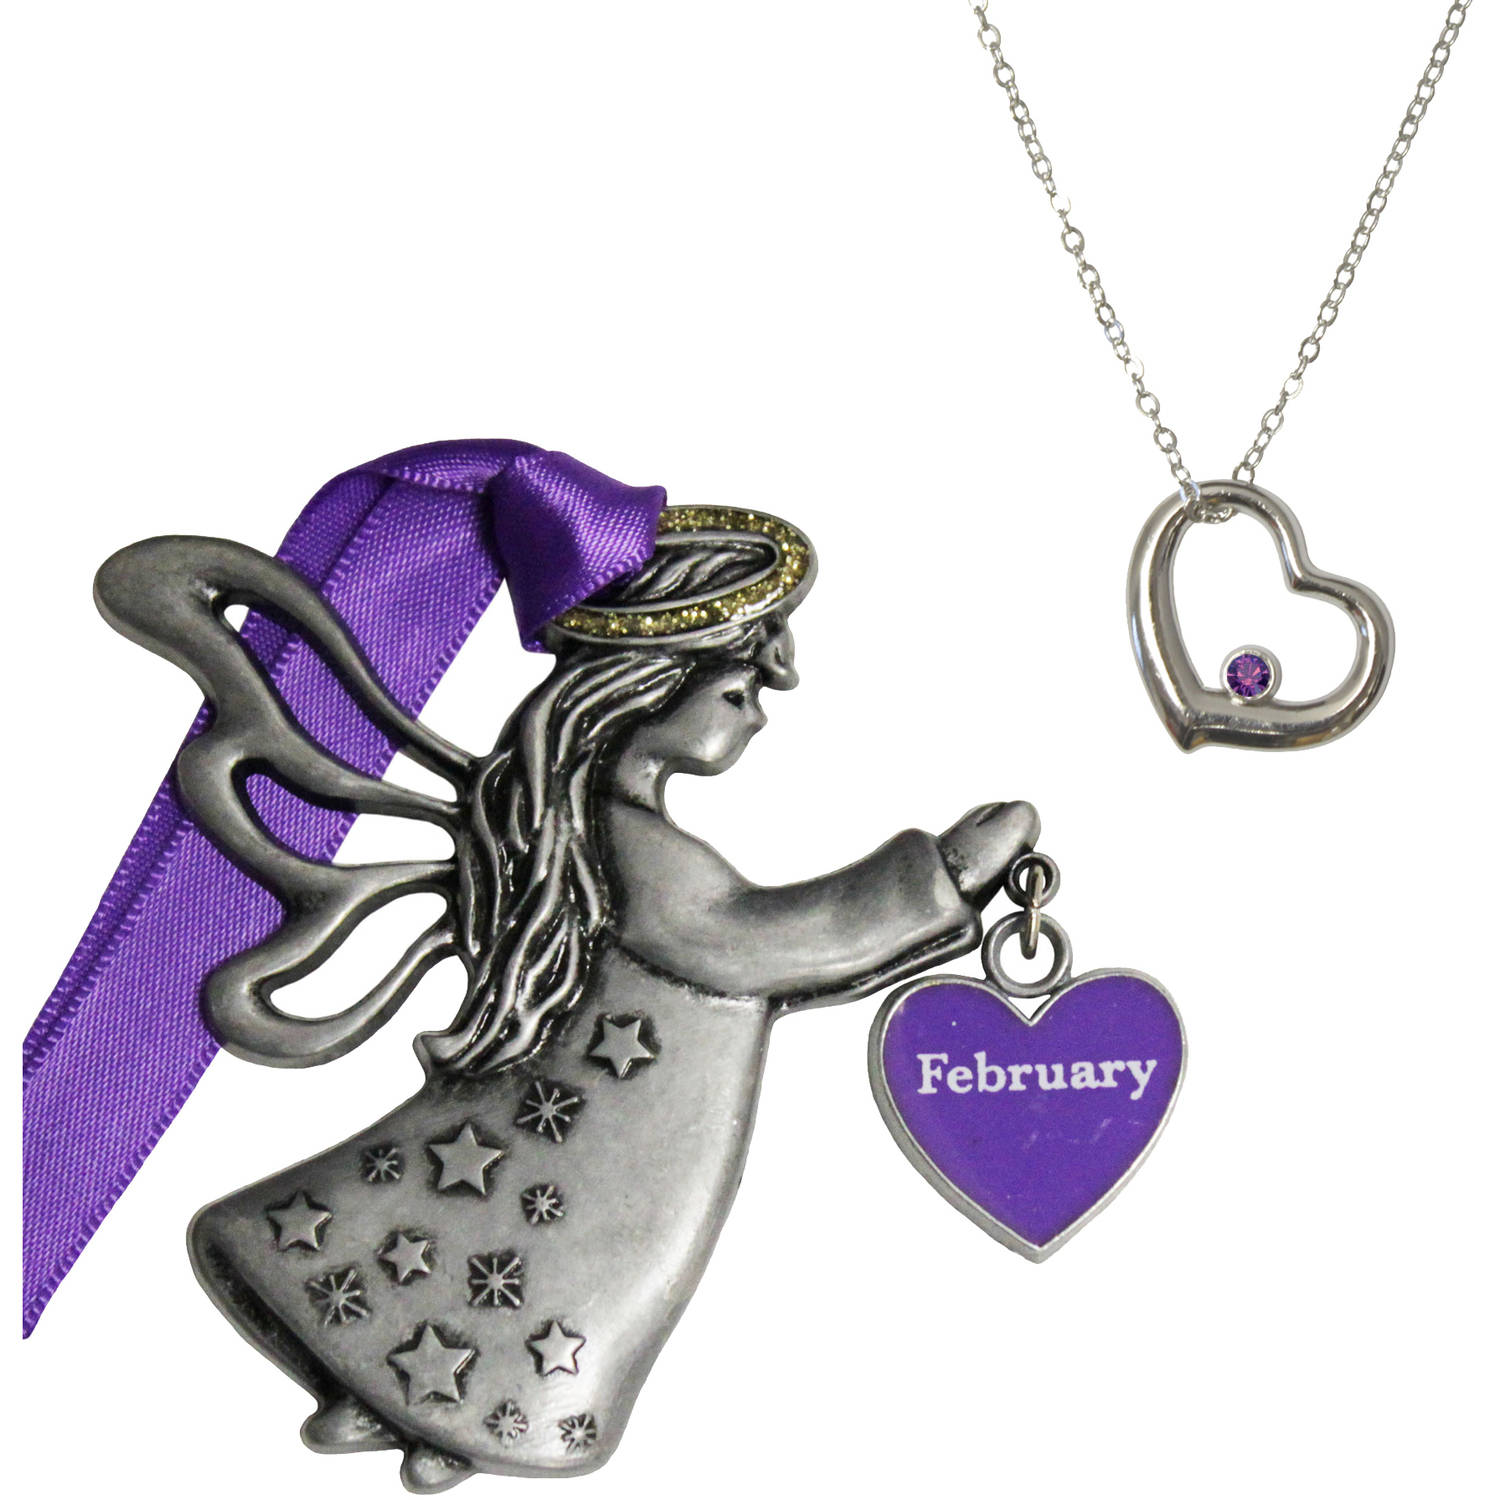 Personalized Gloria Duchin February Birthstone Angel Christmas Ornament and Pendant Necklace Set, 18""